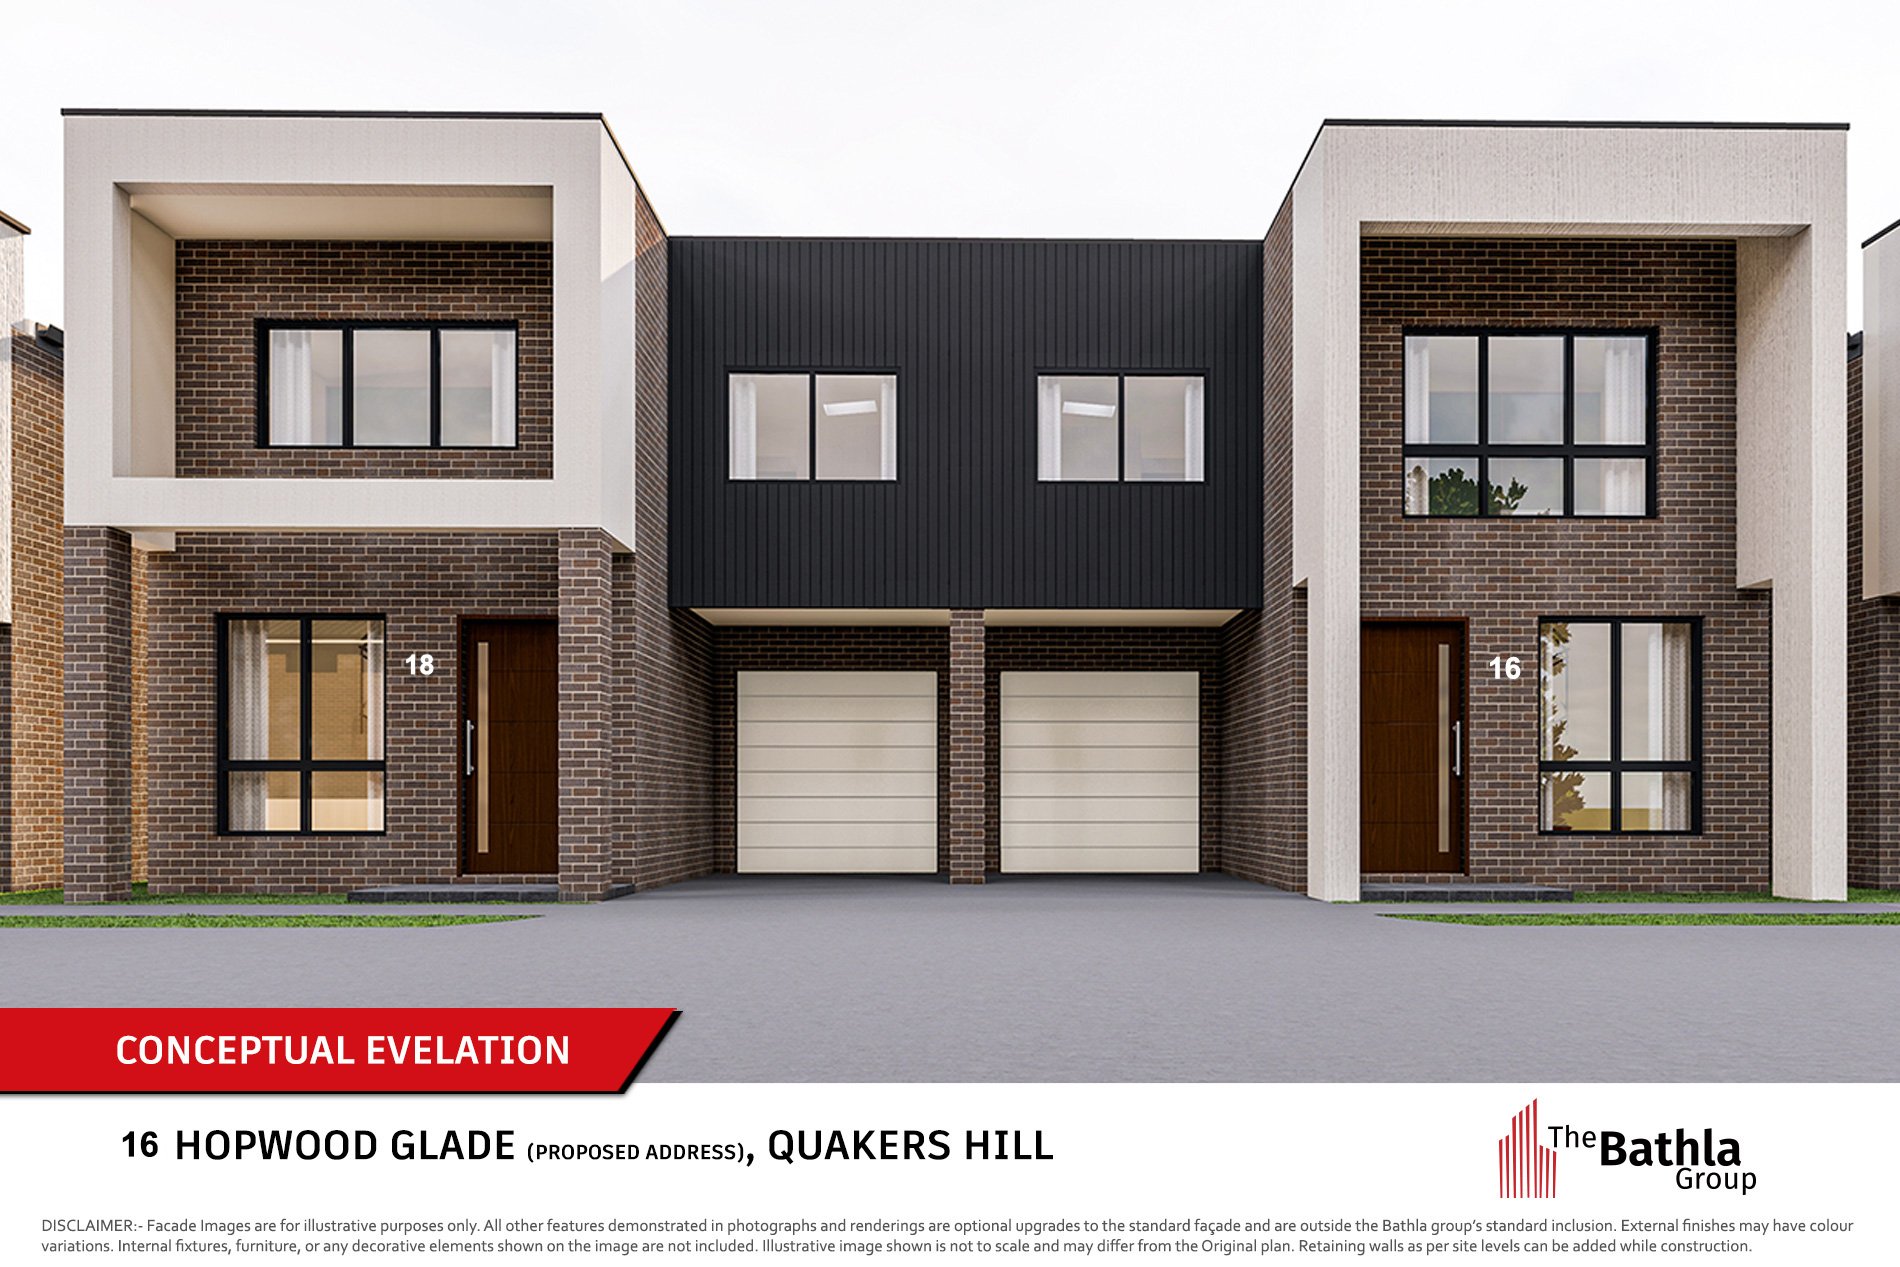 16 Hopwood Glade (Proposed Address), Quakers Hill